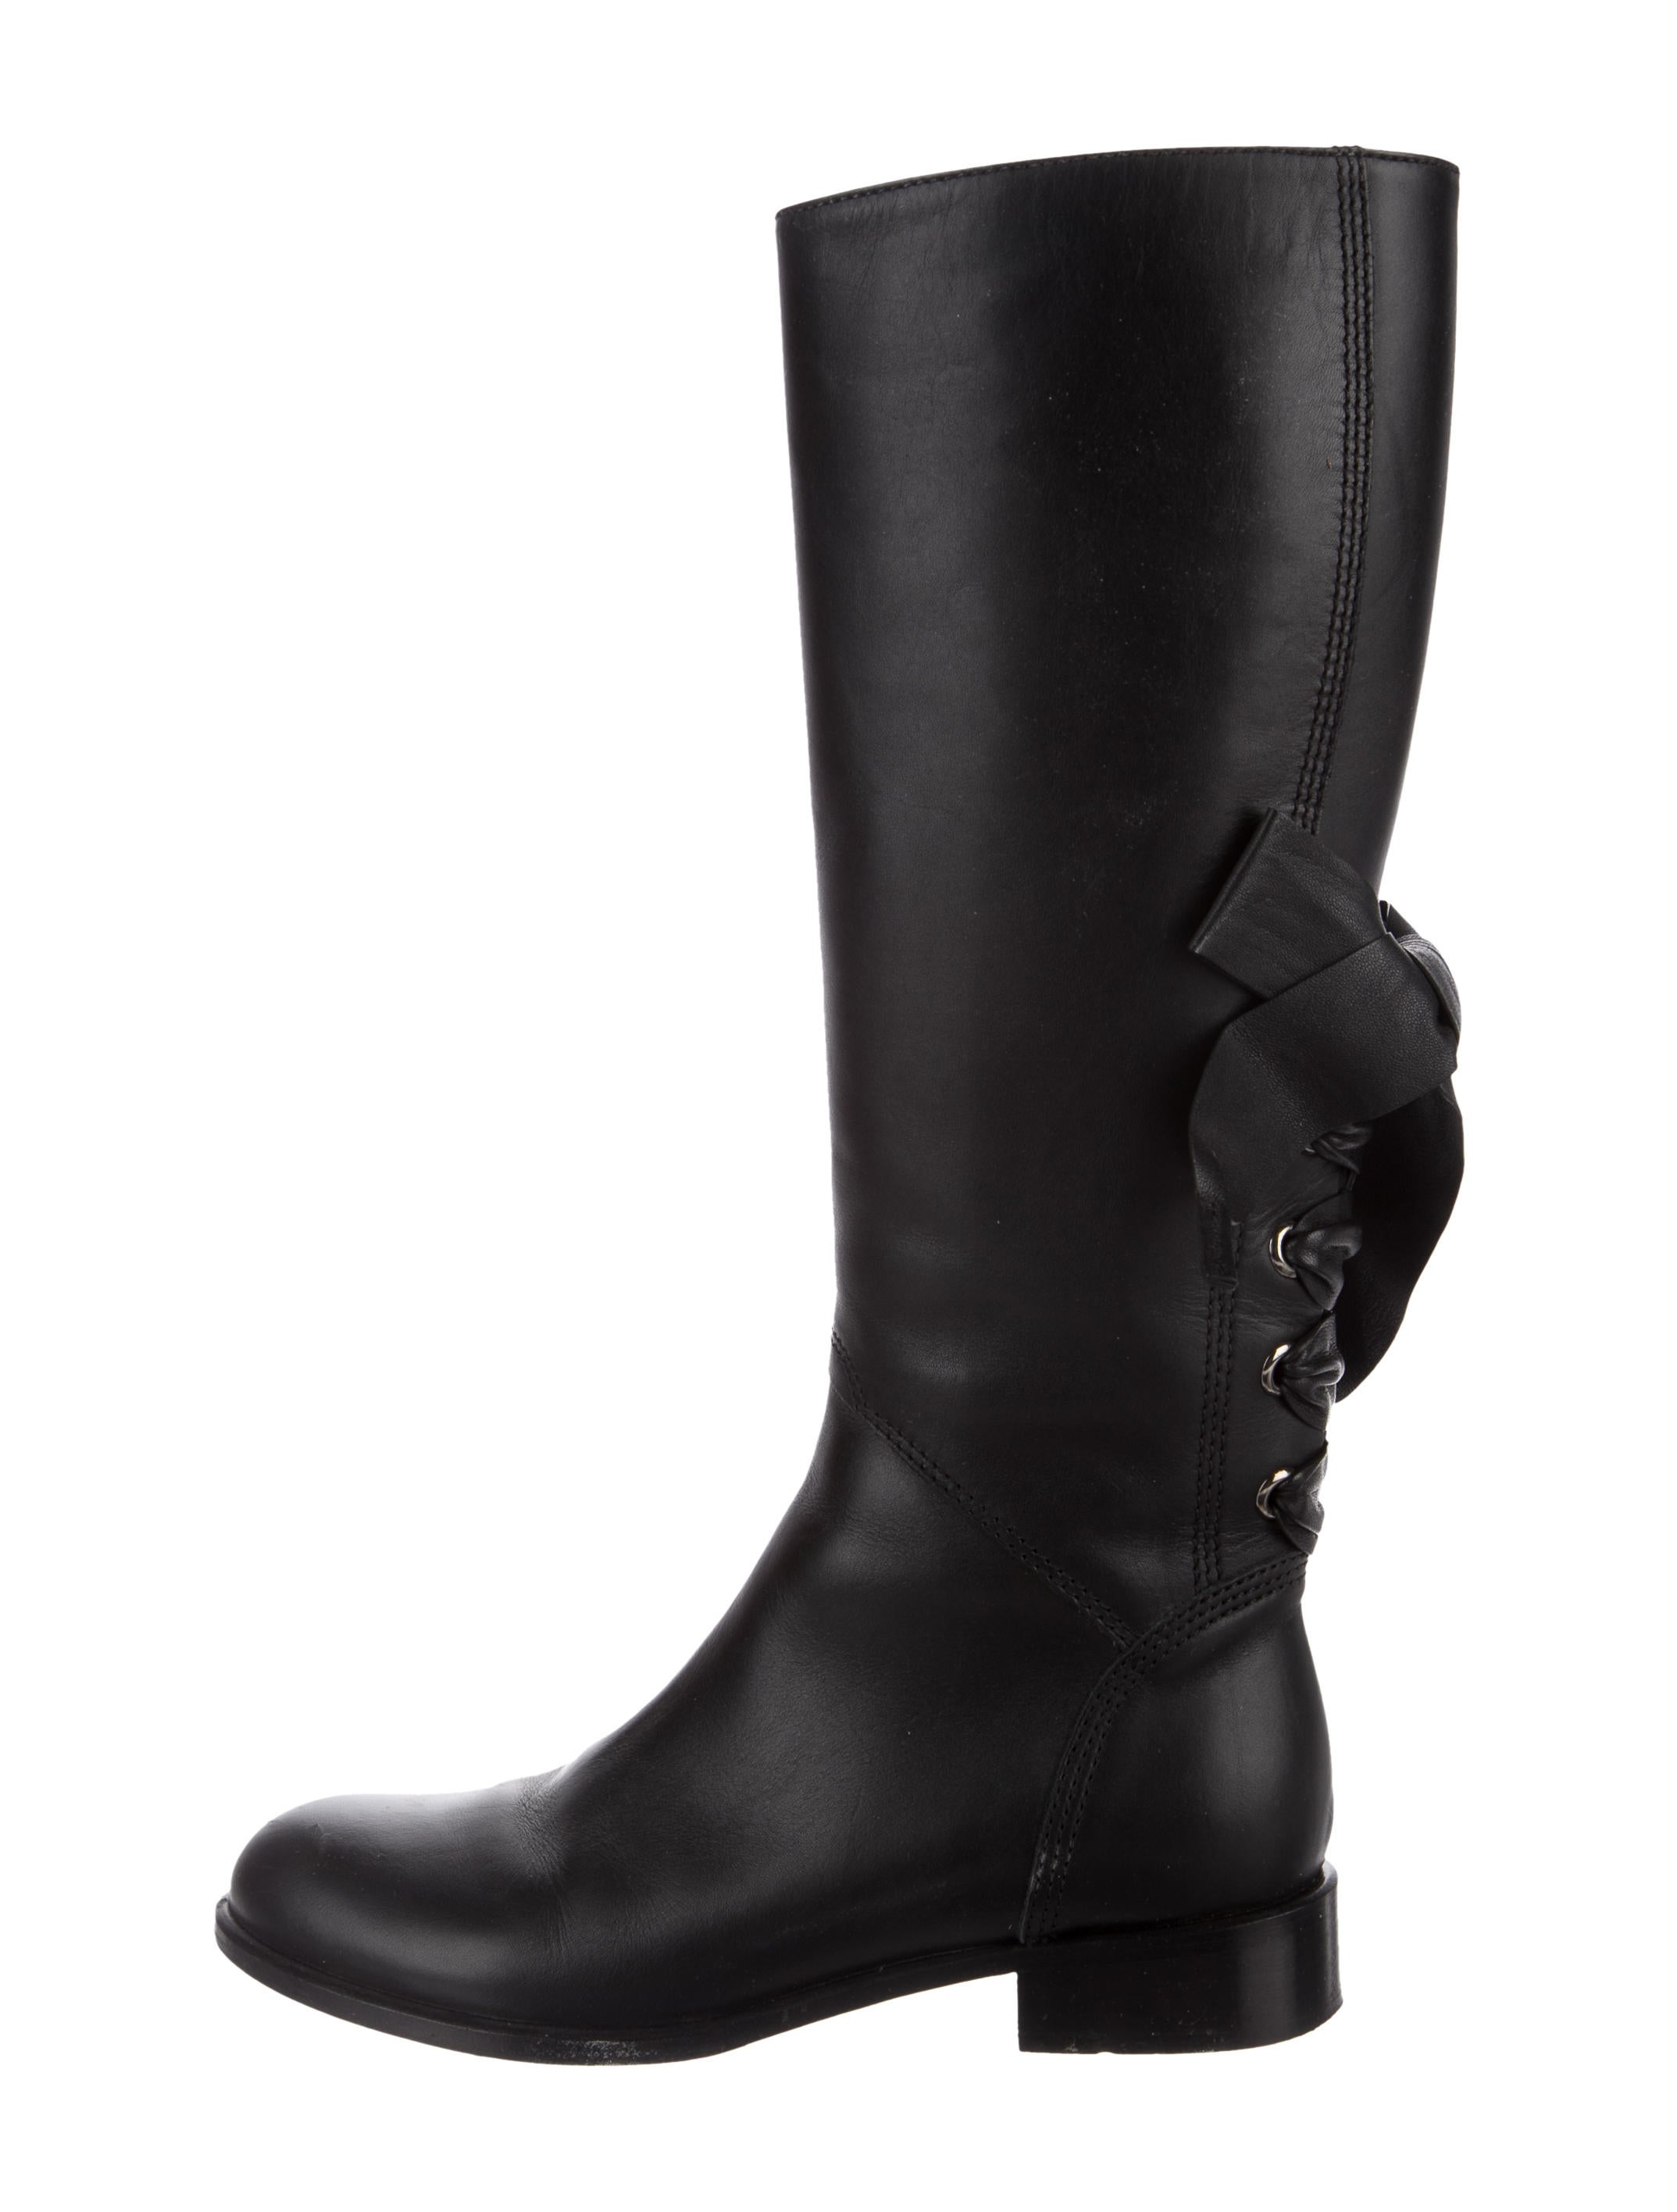 recommend Valentino Bow-Accented Knee-High Boots sale 100% original discount low price fee shipping RsyJvRL3M